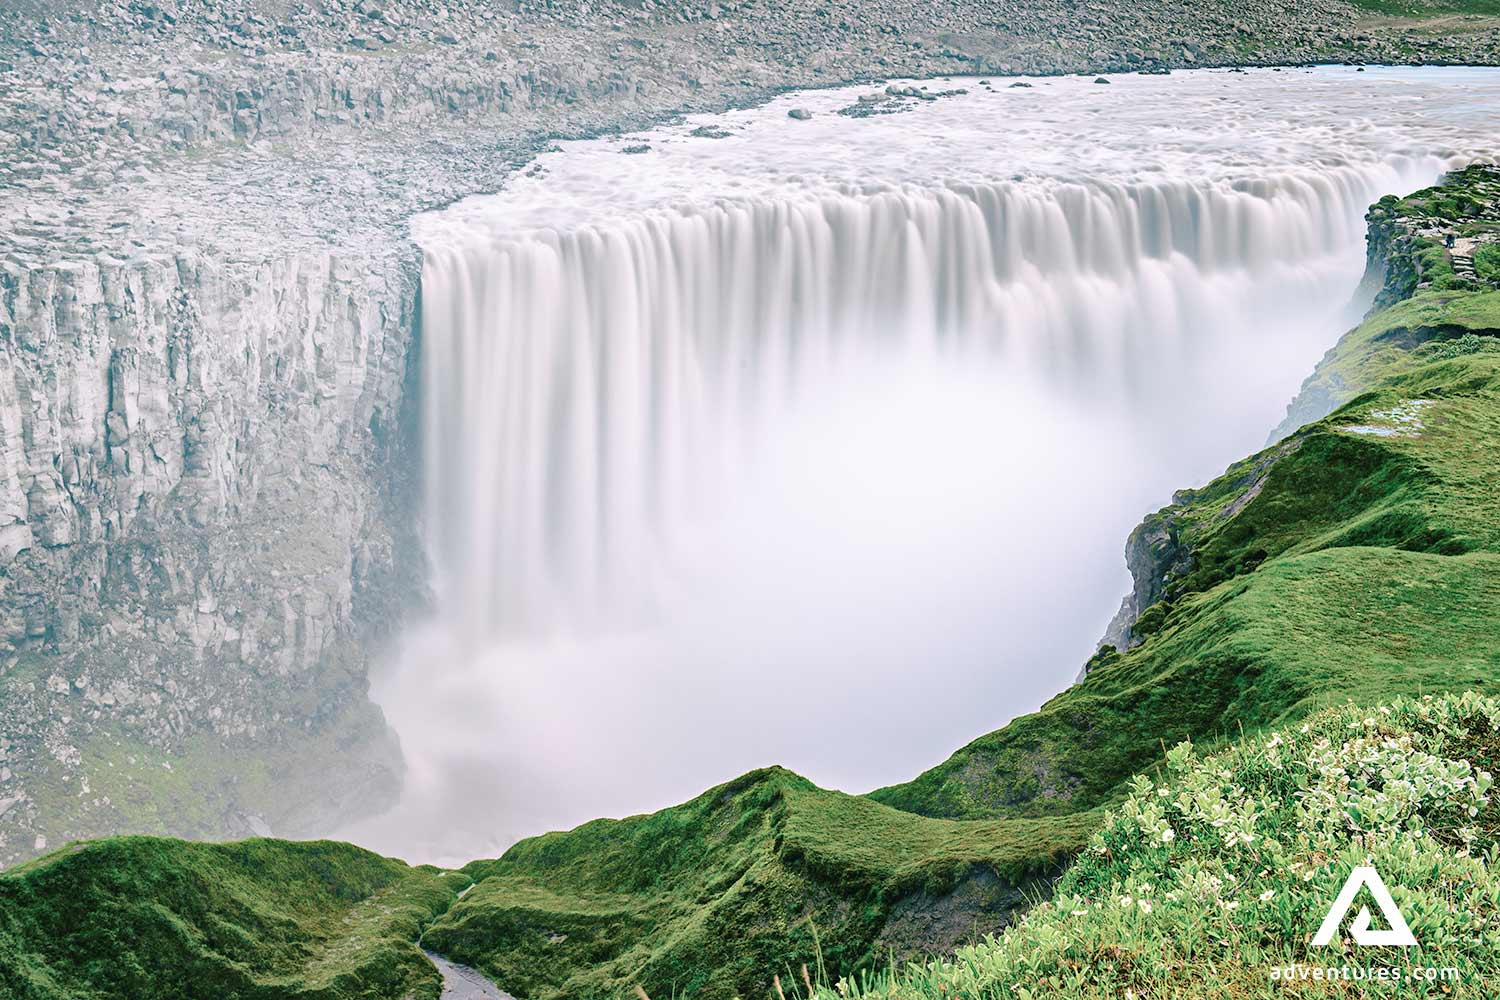 Dettifoss is most powerful waterfall in Europe